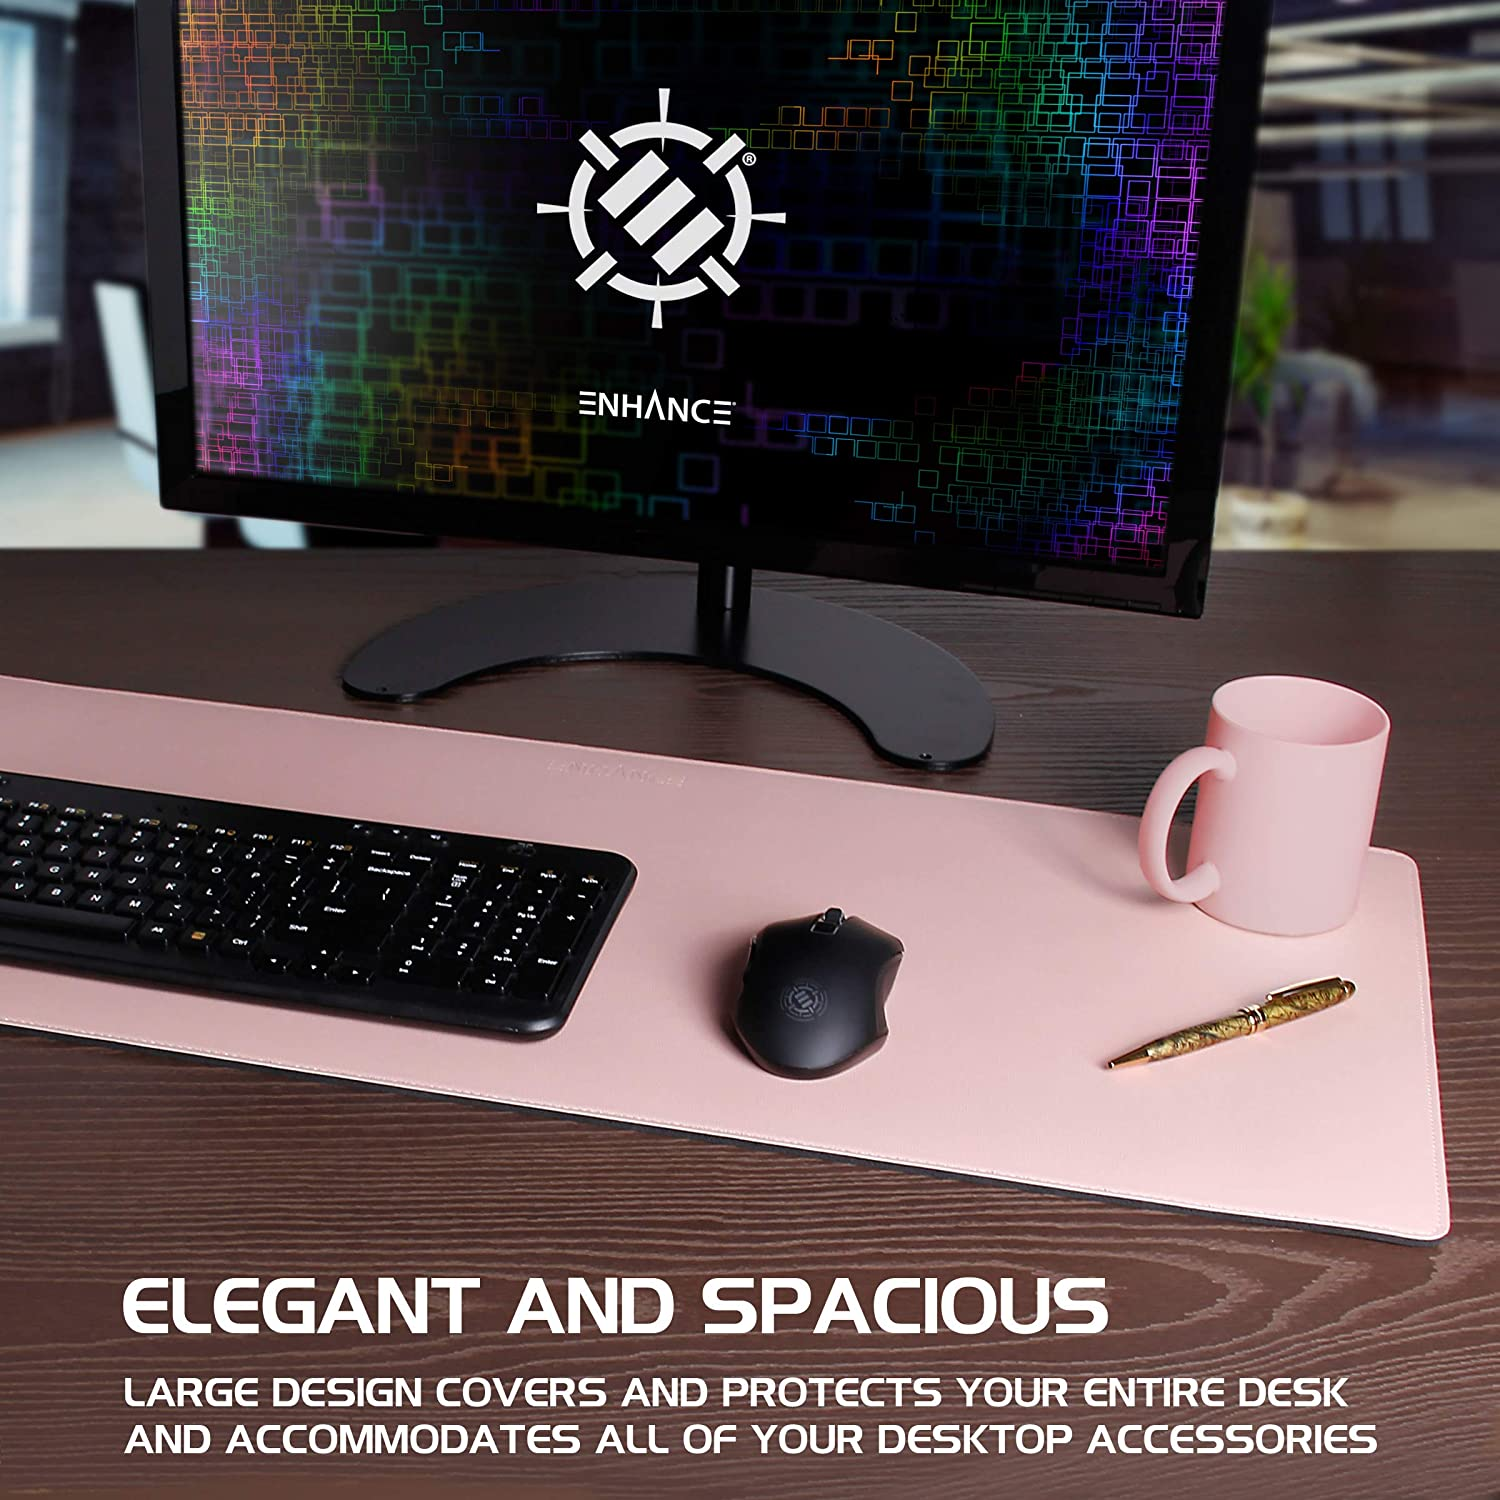 Great Decor and Work from Home Office Accessories Faux Leather Desk Mat Protector Extra Large Non-Slip Grip and Stitched Edges Black Water and Stain Resistant ENHANCE PU Leather Mouse Pad